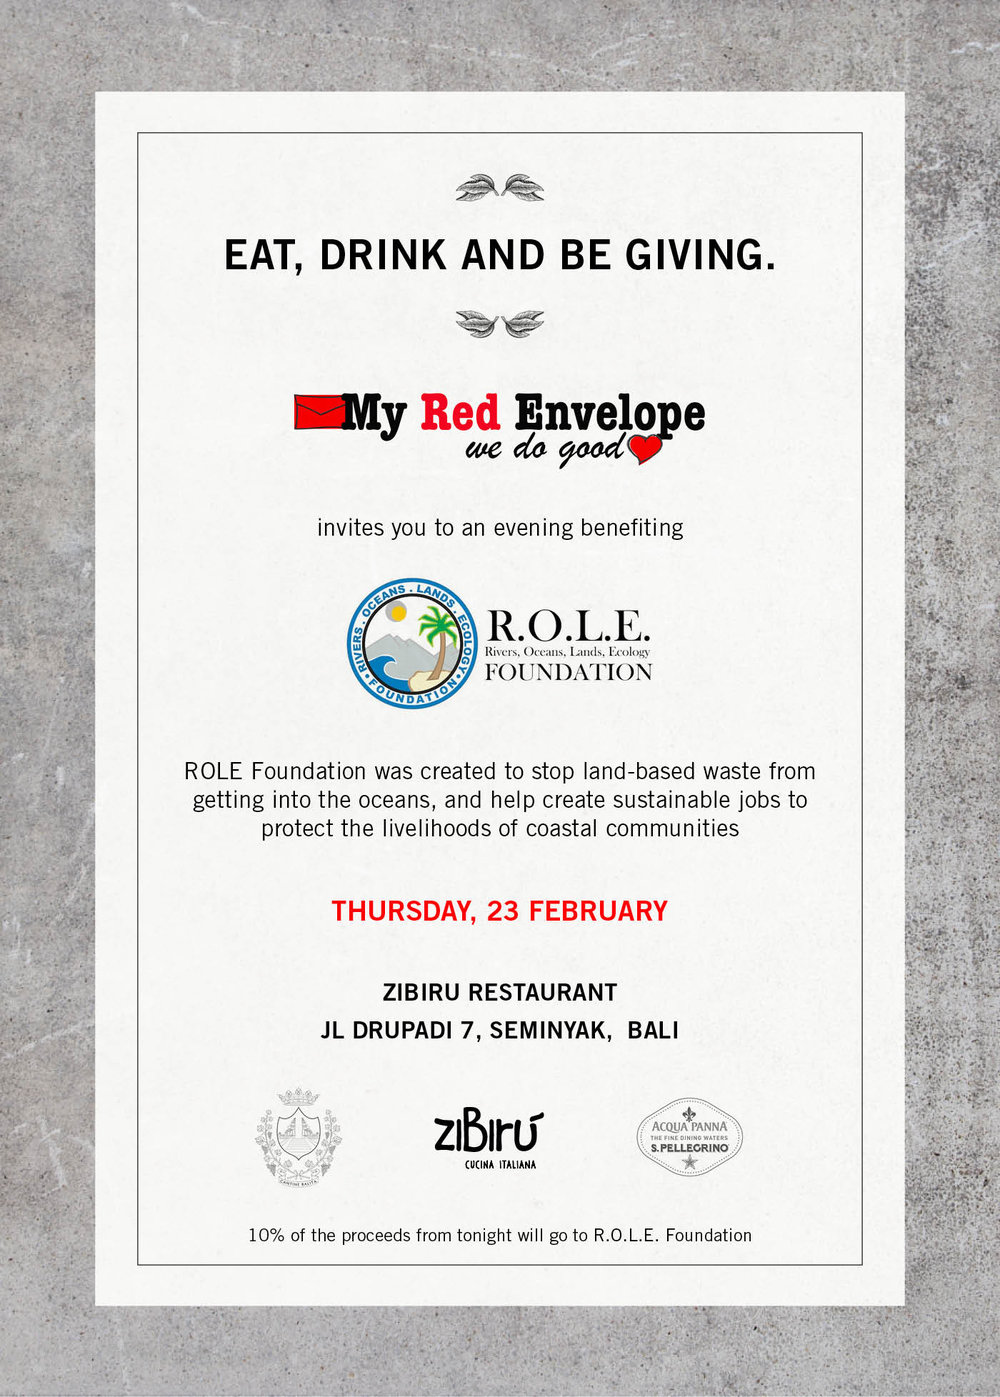 zibiru-italian-restaurant-seminyak-bali-charity-event-role-foundation-my-red-envelope